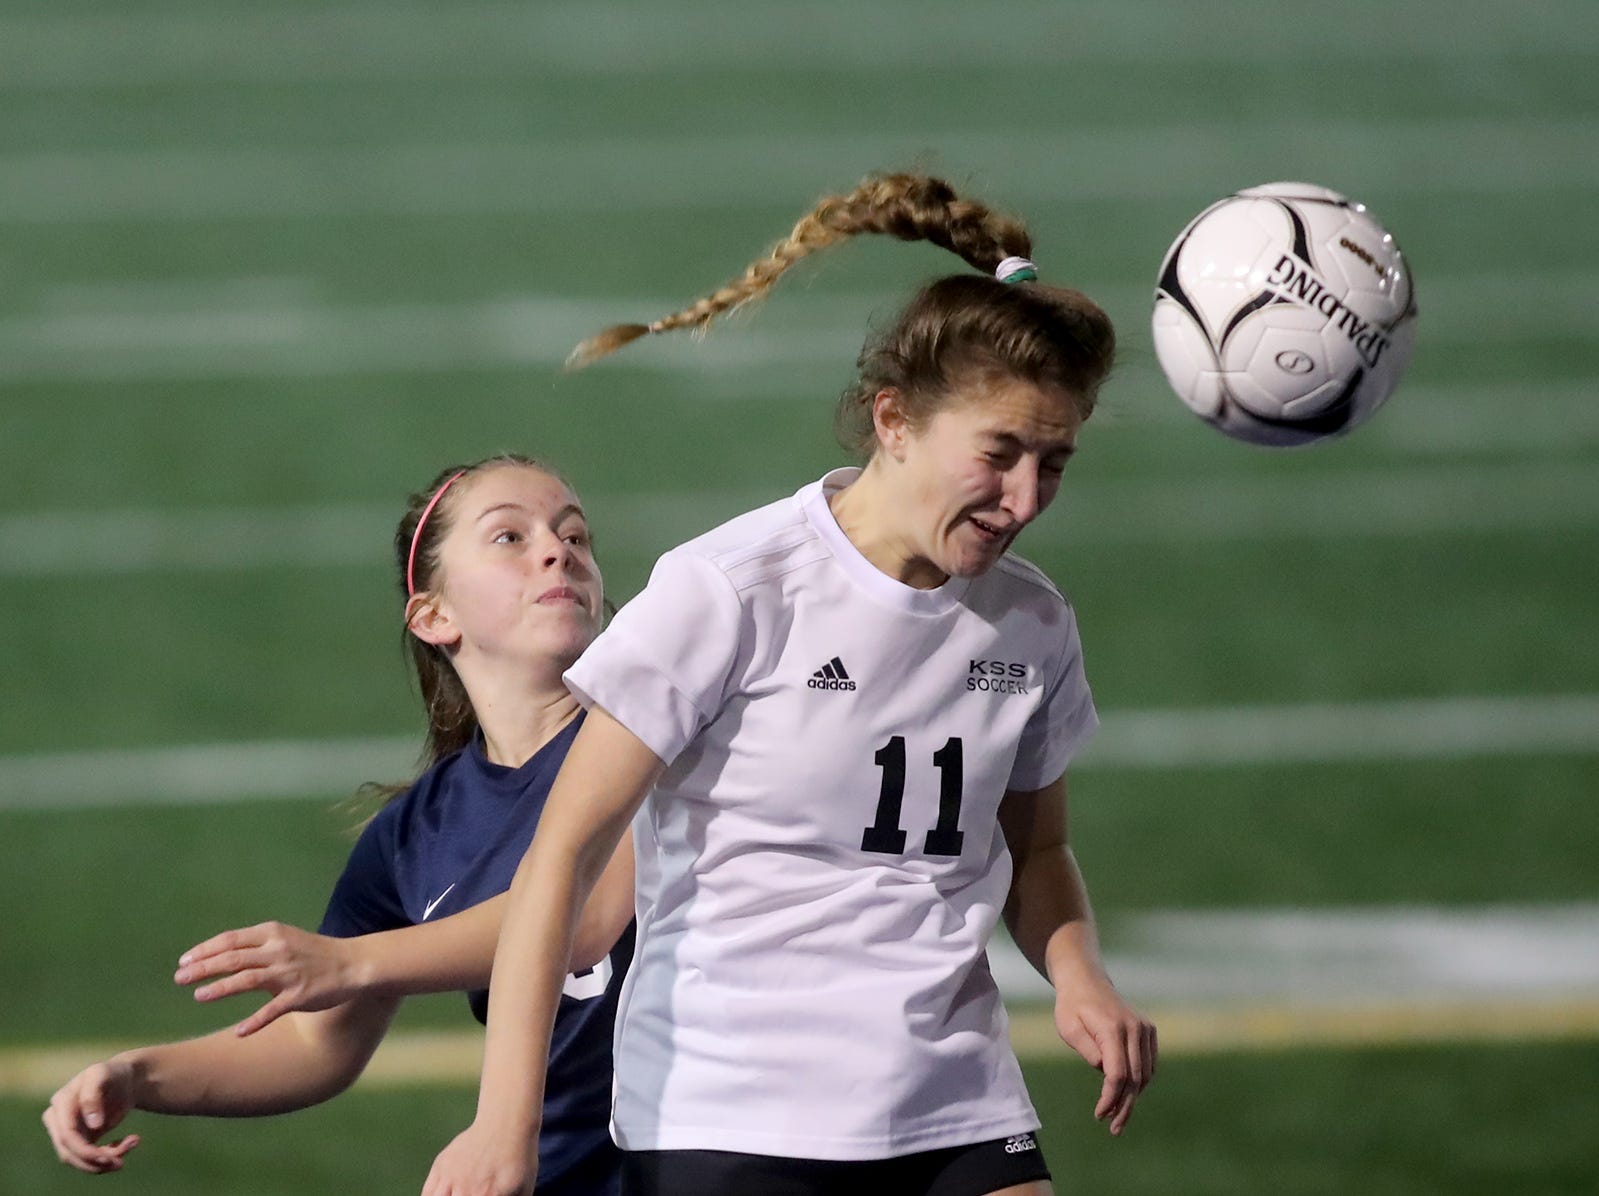 Klahowya lost to King's Way on a shootout kicks in the 2018 Girls Soccer State Championship 1A semifinal game at Shoreline Stadium on Friday, November 16, 2018.